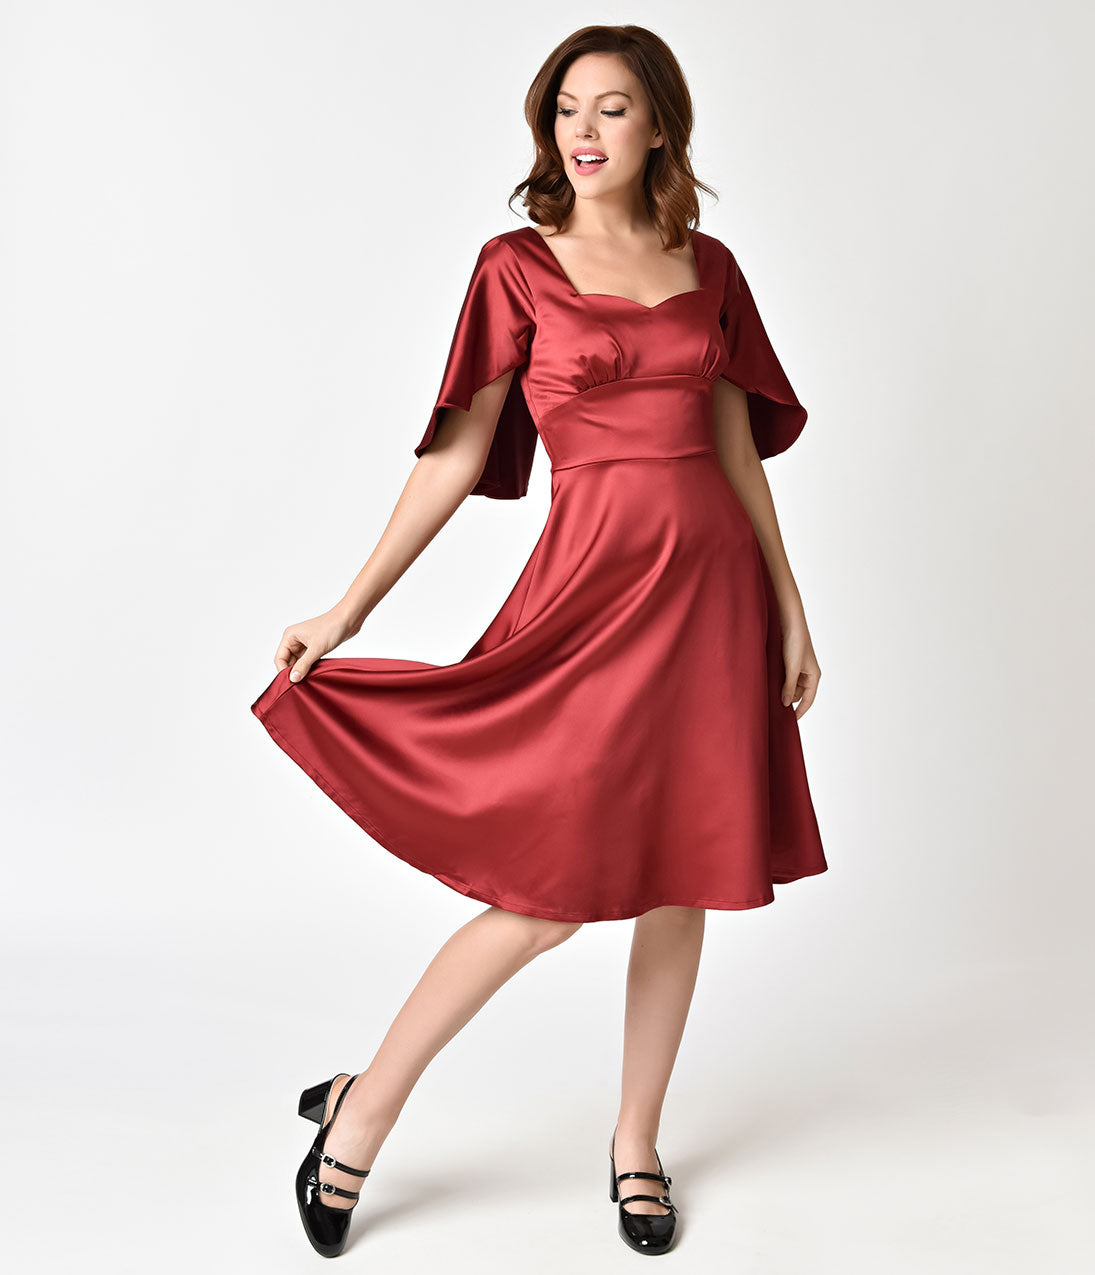 1940s Costume & Outfit Ideas – 16 Women's Looks Voodoo Vixen 1940s Burgundy Red Satin Mariah Cape Dress $43.00 AT vintagedancer.com